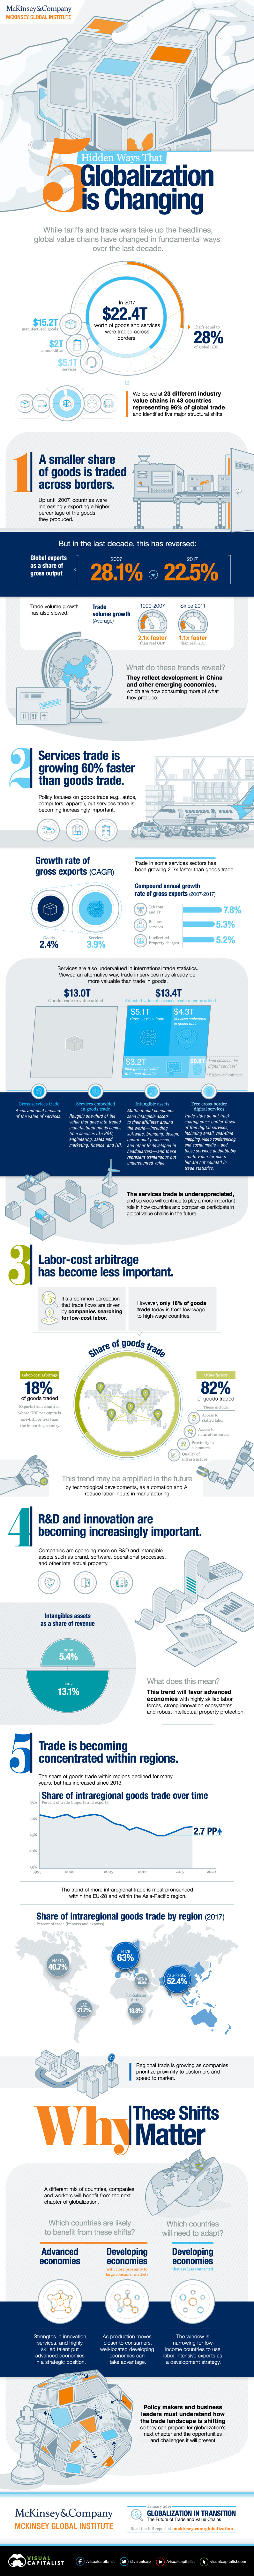 5 Hidden Ways That Globalization is Changing #infographic